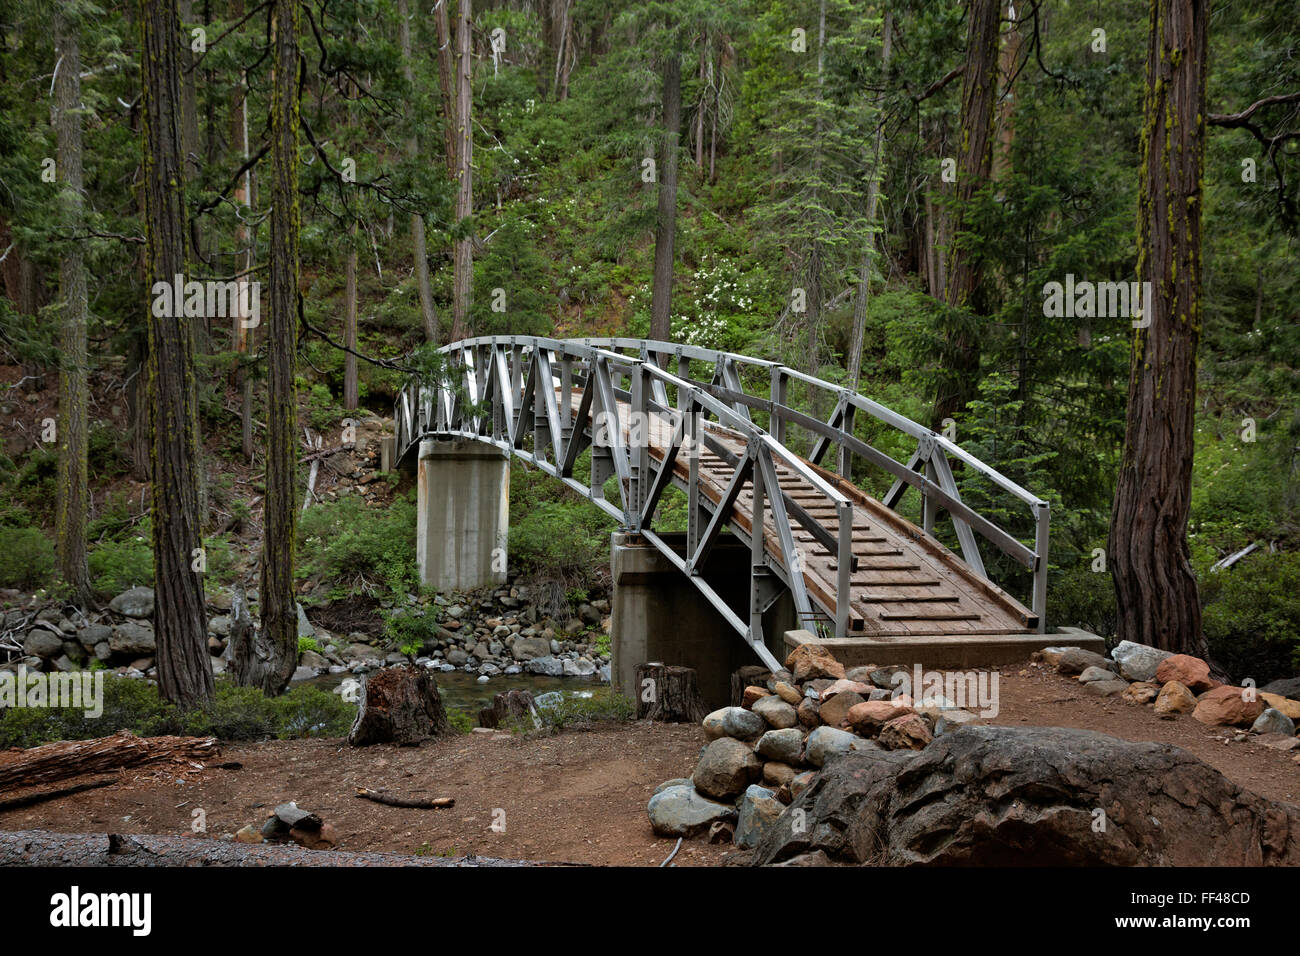 CA02787-00...CALIFORNIA - Bridge over Swift Creek on the Granite Creek Trail in the Trinity Alps Wilderness area. - Stock Image